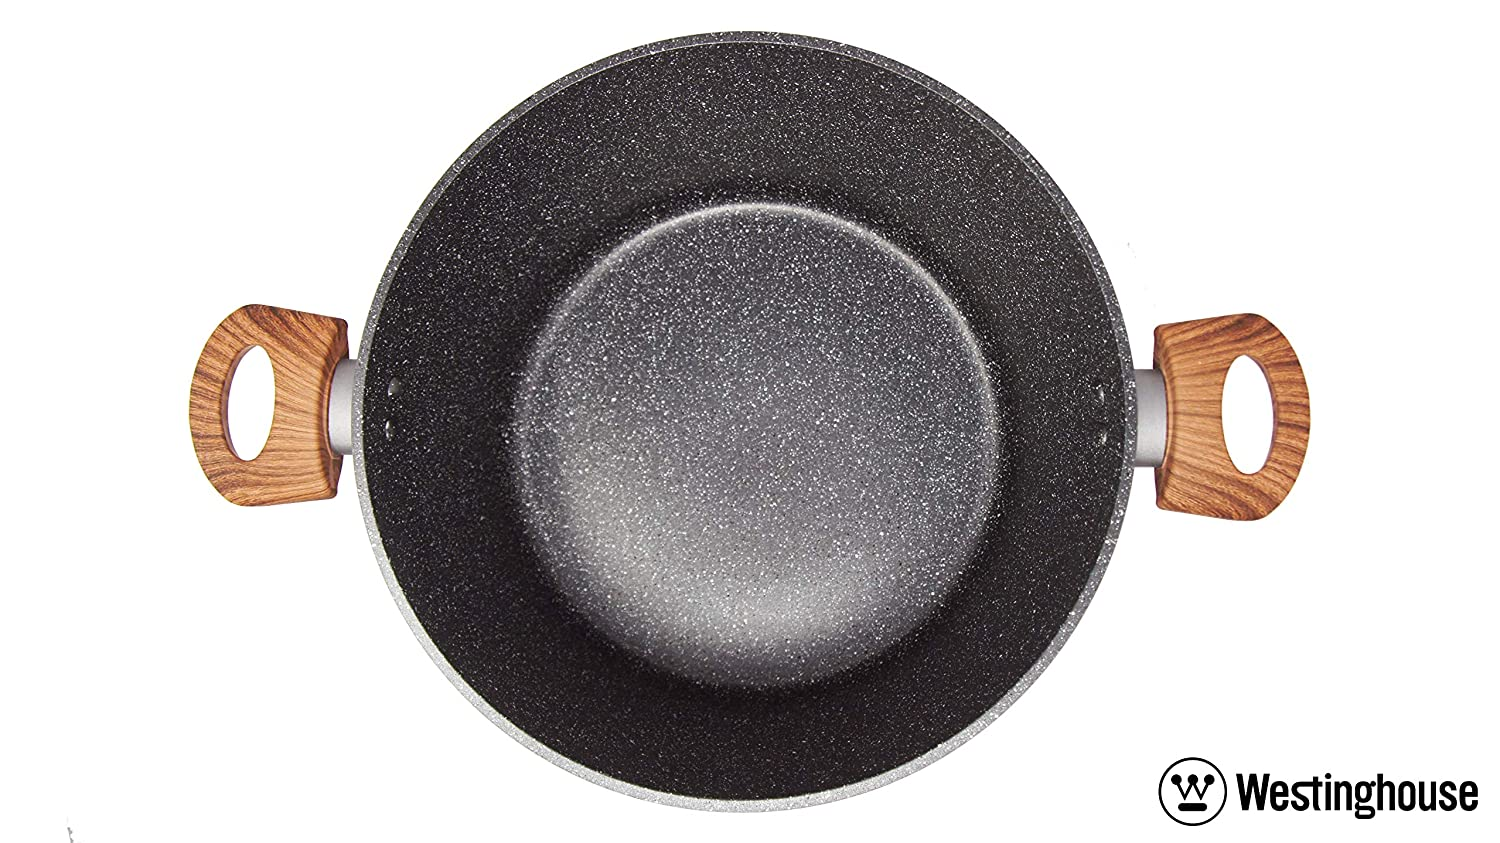 Westinghouse Marble Coated Non-Stick Grey Casserole 11 inches